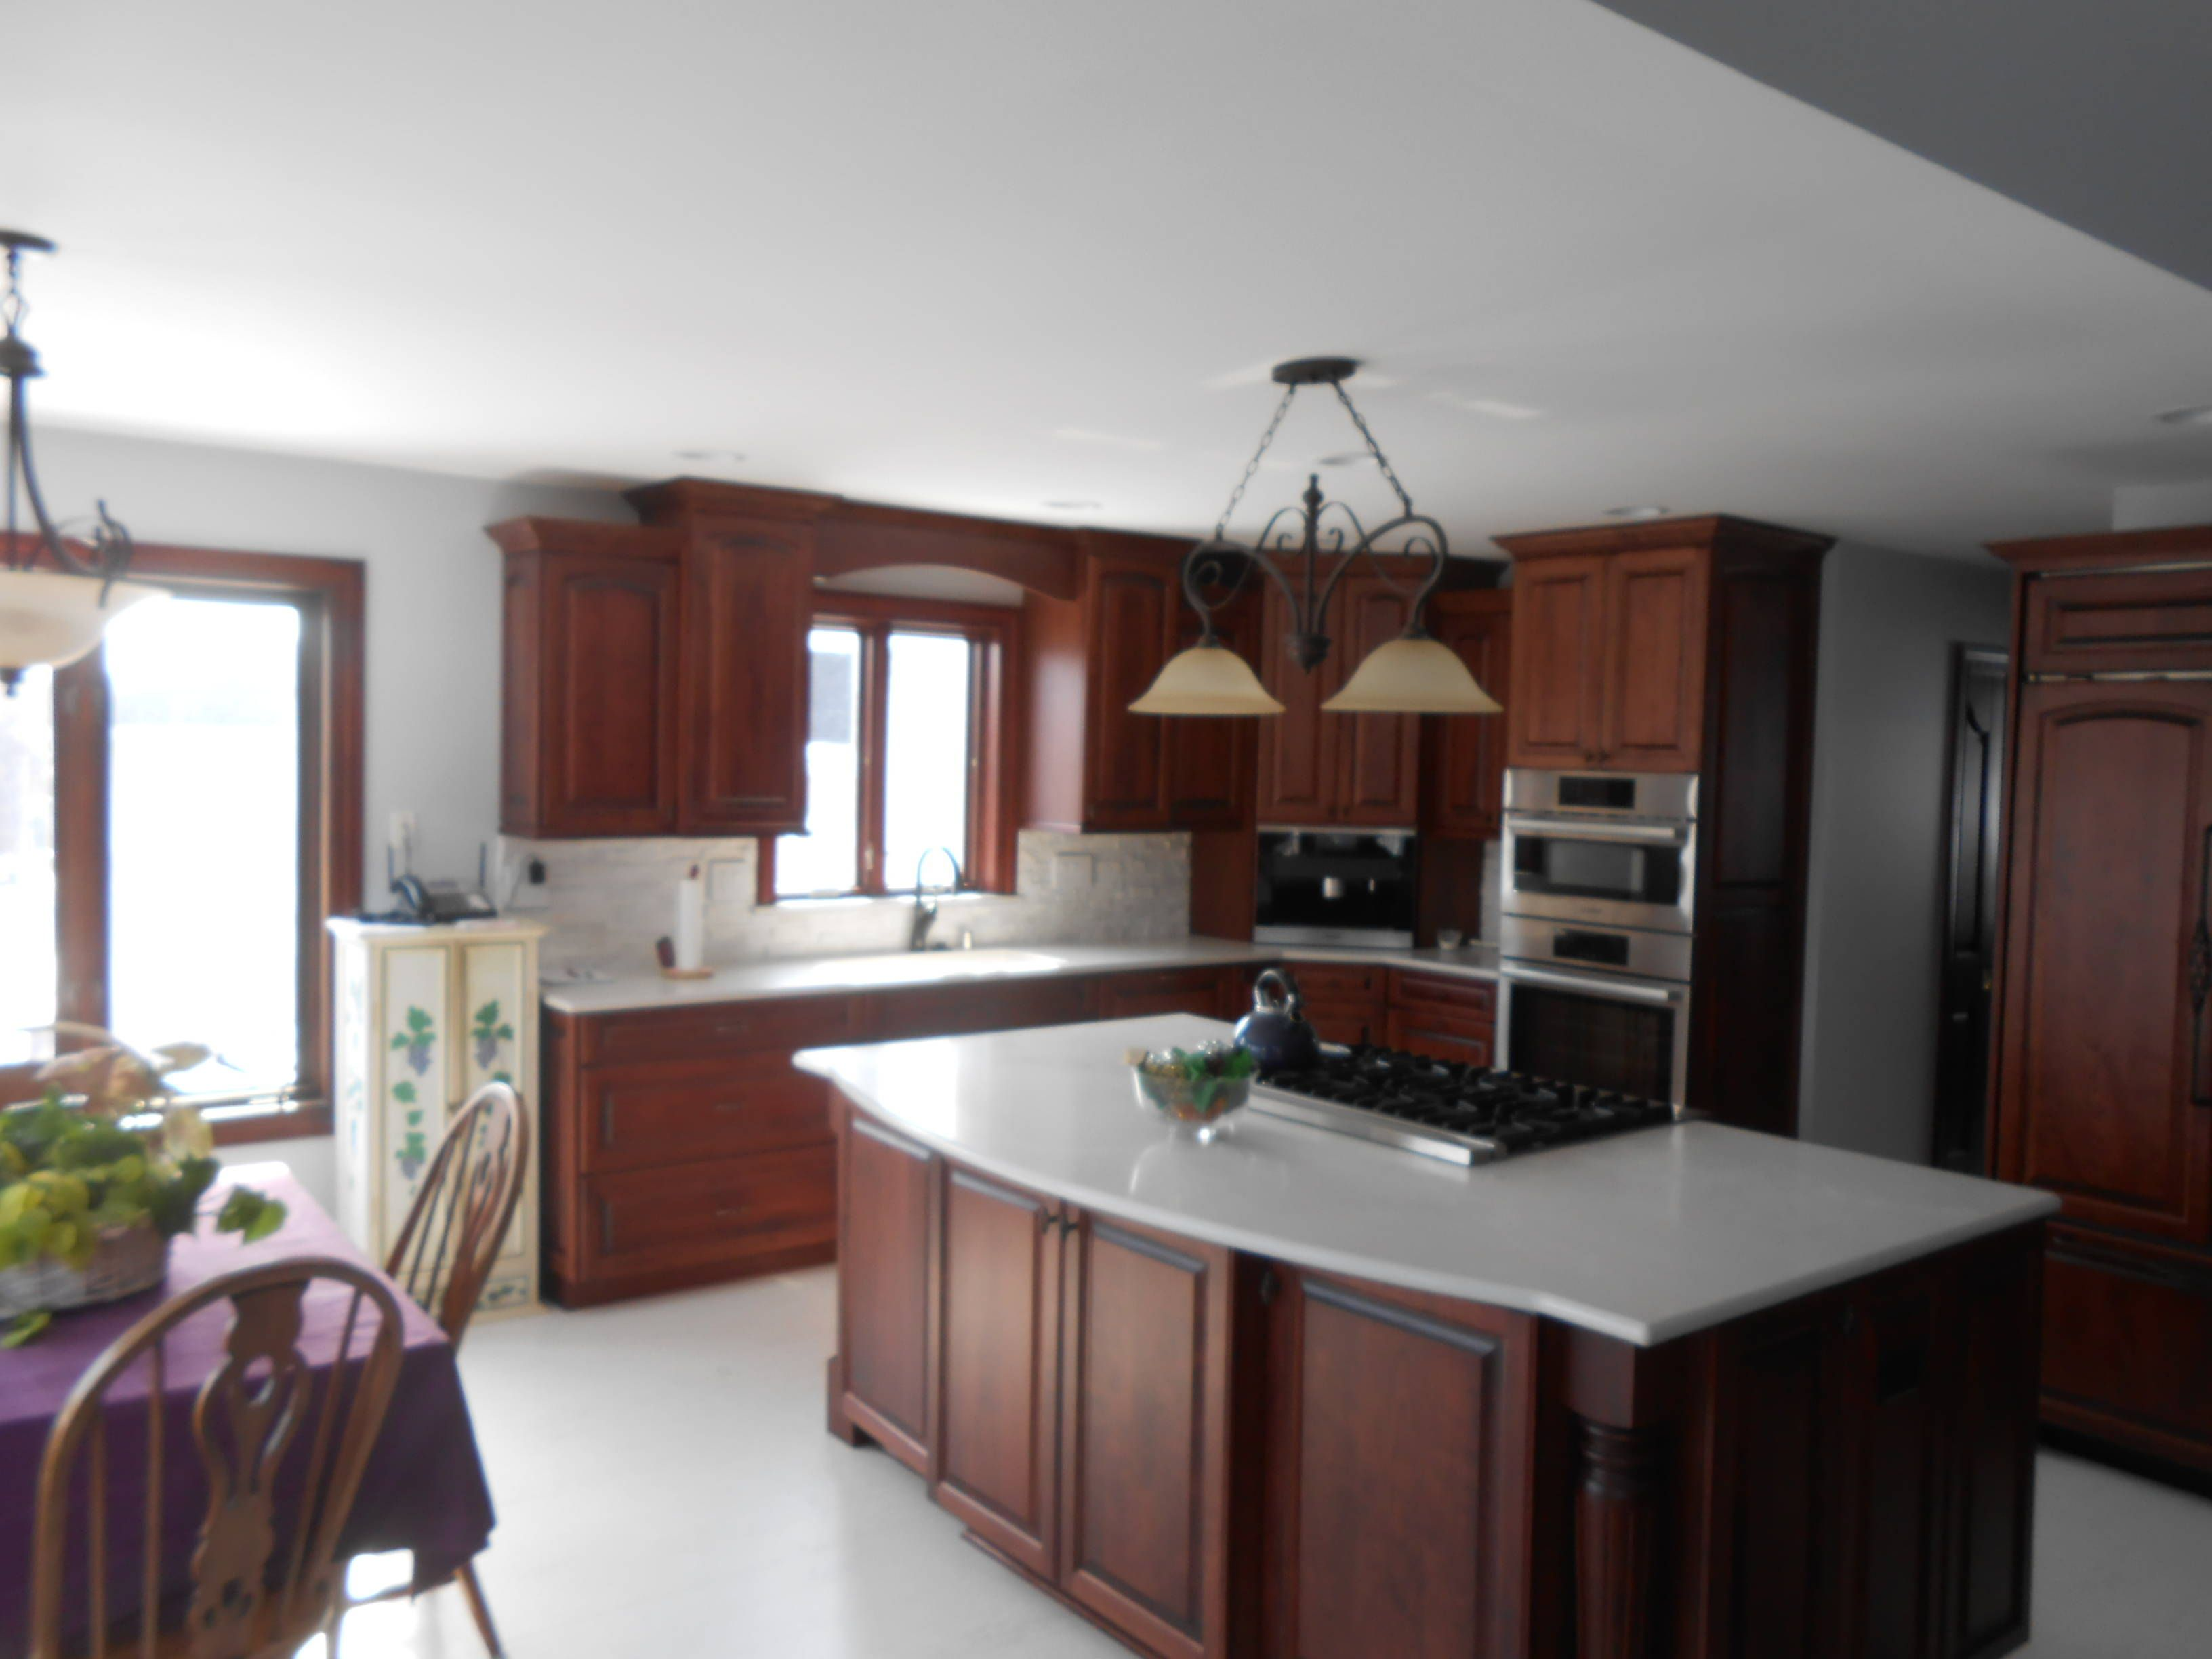 angled kitchen island with sink - Google Search